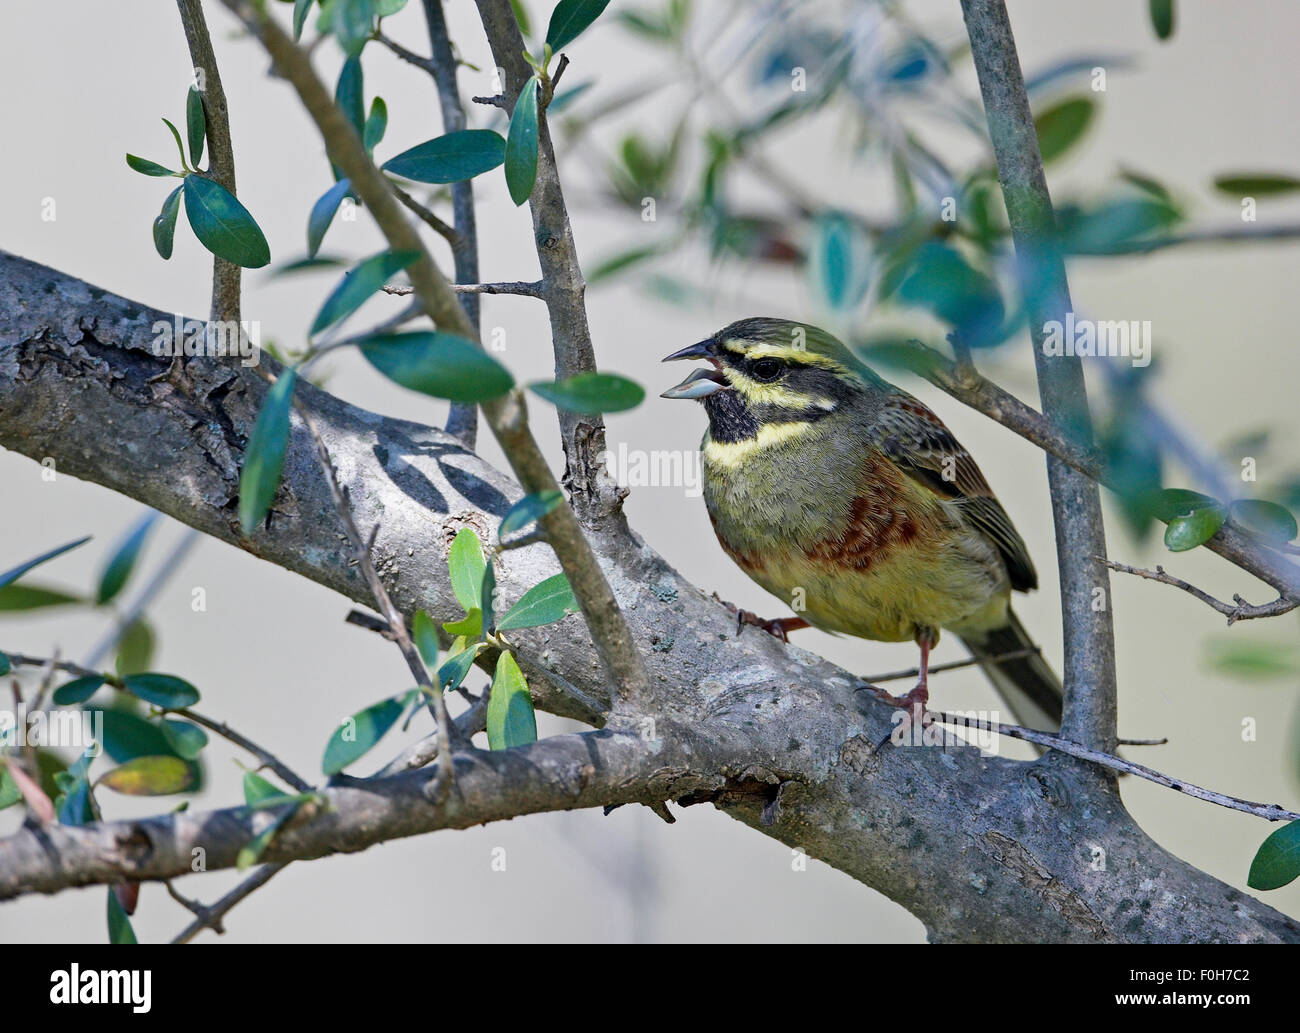 Male Cirl Bunting (Emberiza cirlus) perched in tree singing, Extremadura, Spain, April 2009 - Stock Image